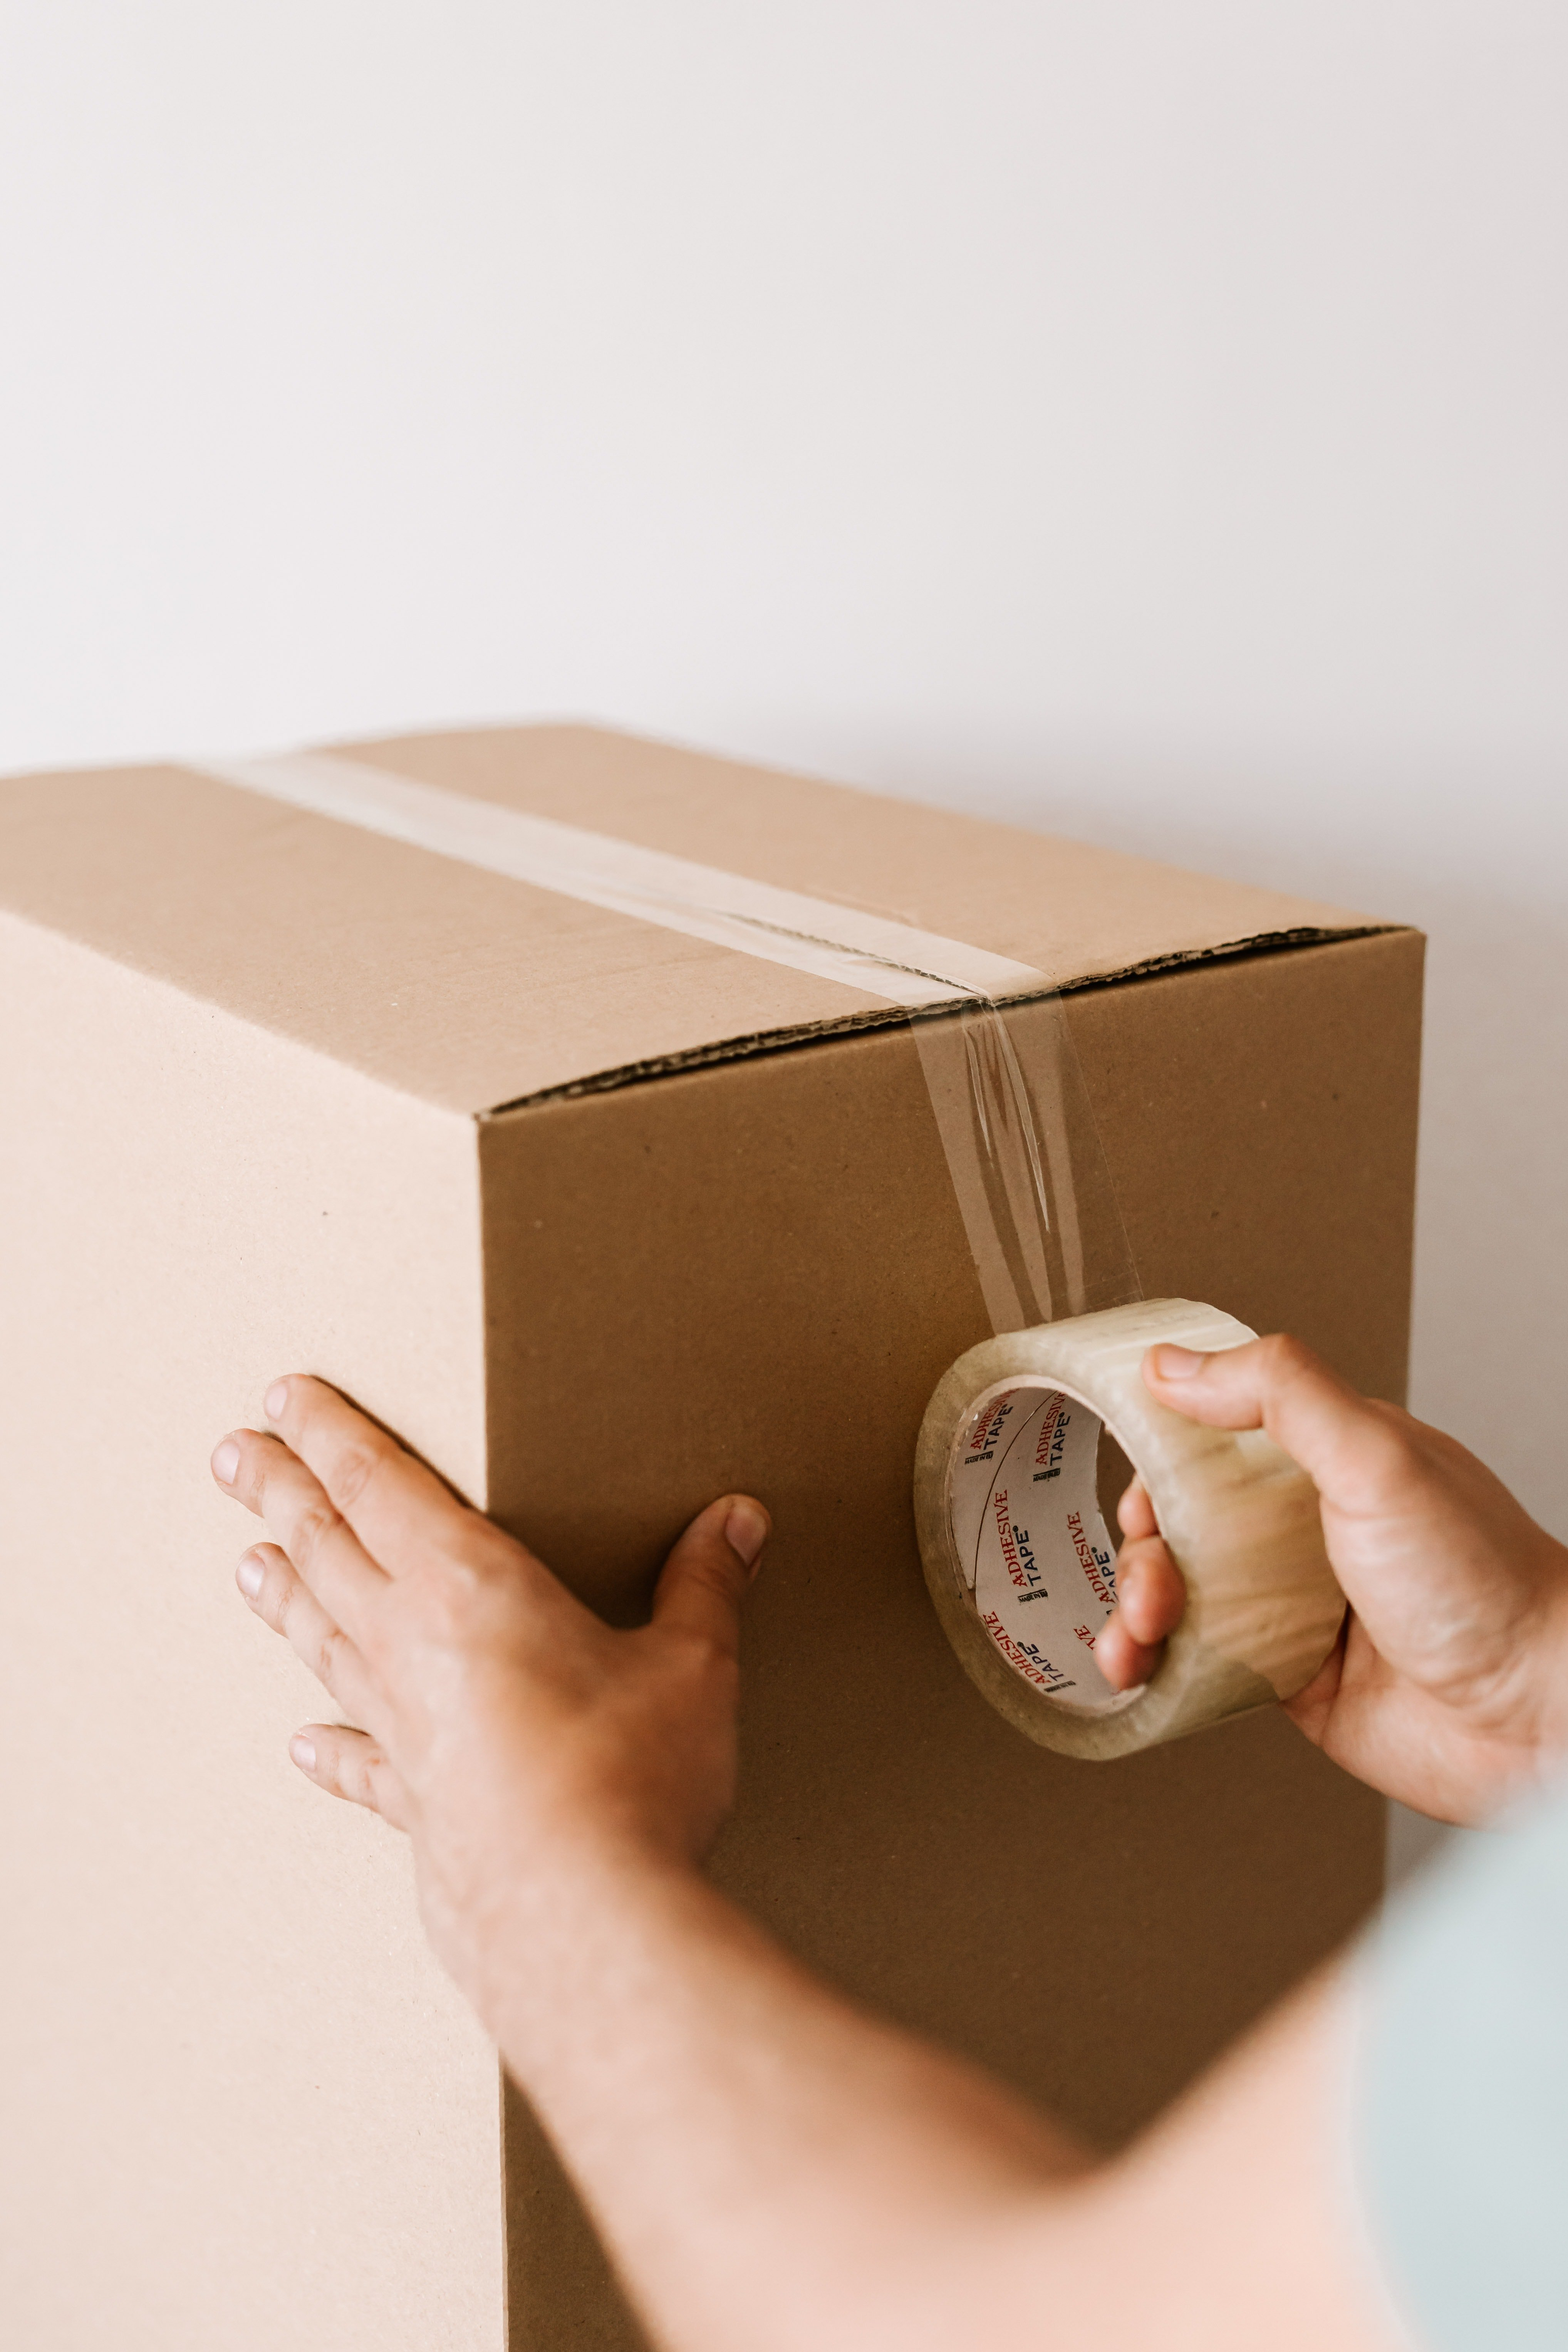 Boxing Up Your Items for Self Storage